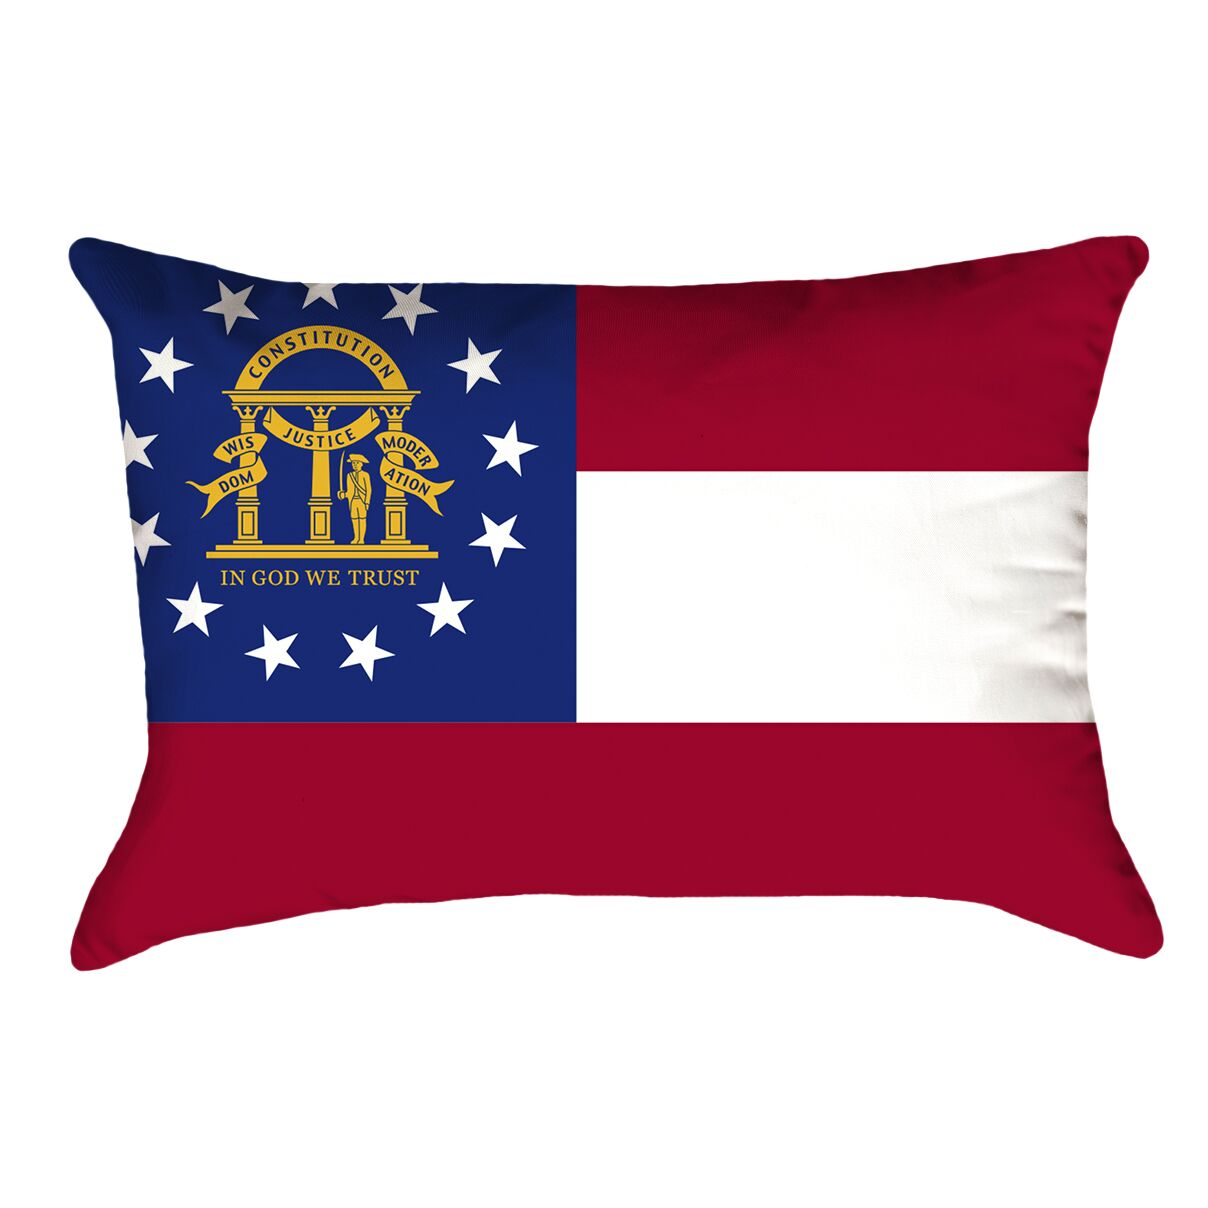 Centers Georgia Flag Lumbar Pillow Material/Product Type: Faux Suede Double Sided Print/Pillow Cover